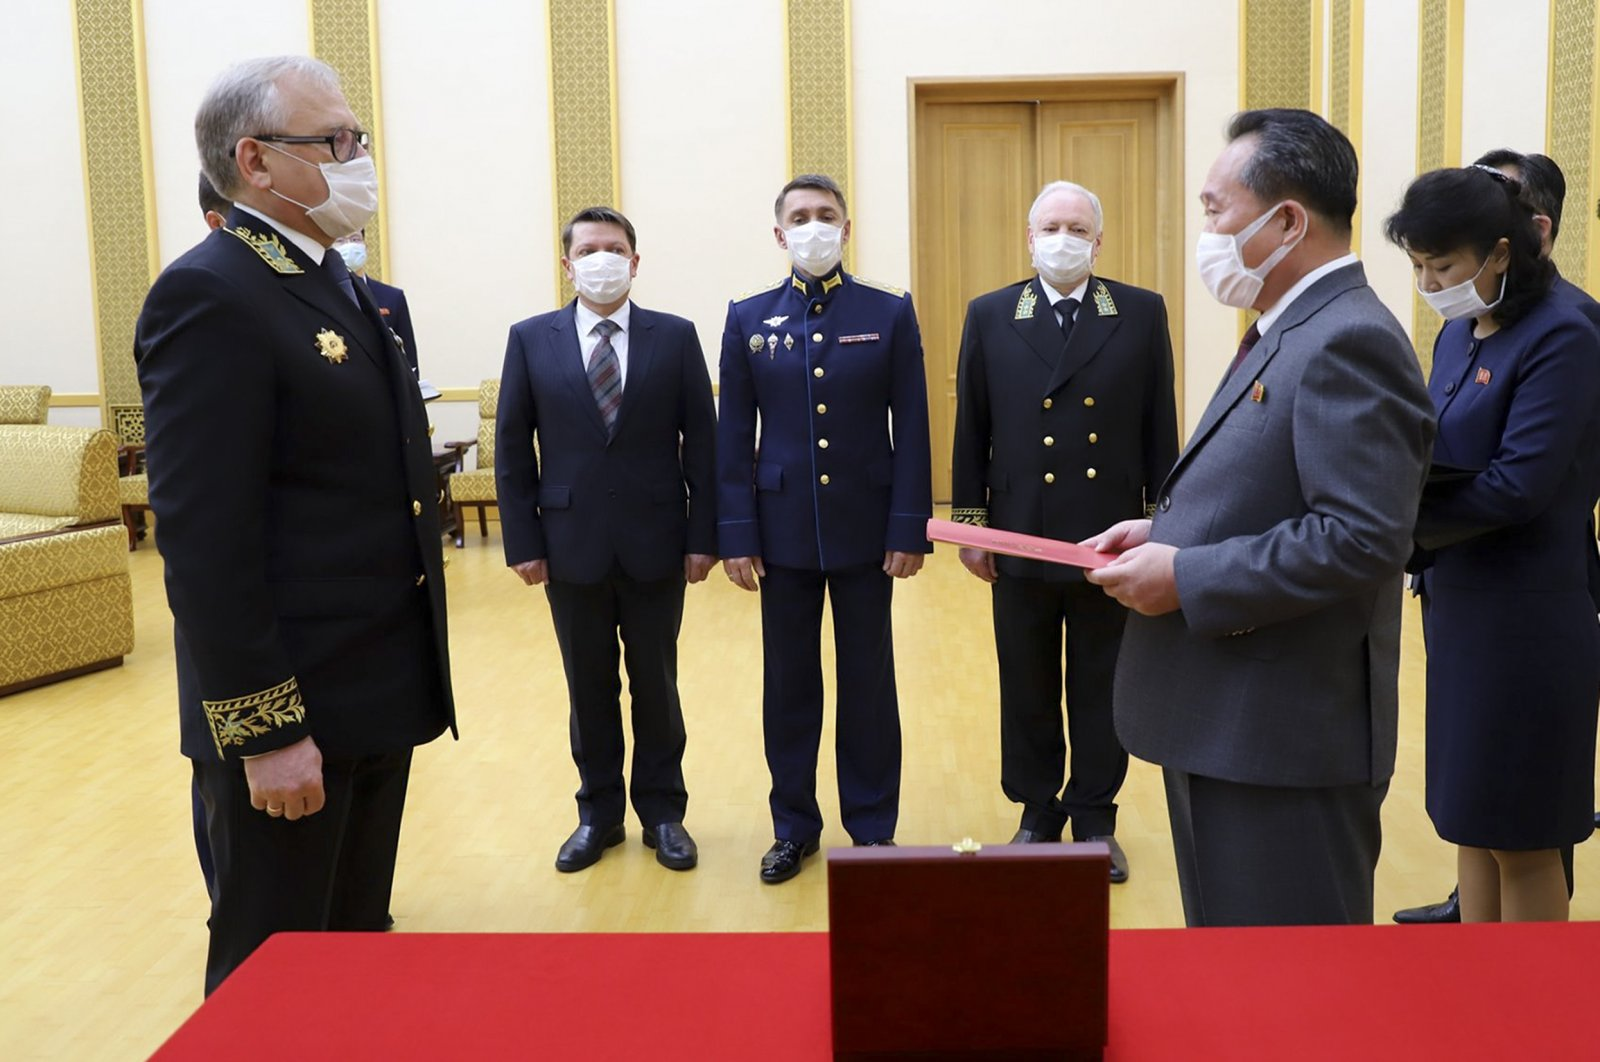 Russian Ambassador to the Democratic People's Republic of Korea Alexander Matsegora (L) and DPRK Foreign Minister Ri Son-gwon (R), both wearing face masks to protect against the novel coronavirus, attend a ceremony awarding North Korean leader Kim Jong-un with Russia's 75th anniversary Victory medal for his major contribution in commemorating Soviet soldiers, Pyongyang, North Korea, May 5, 2020. (AP Photo)